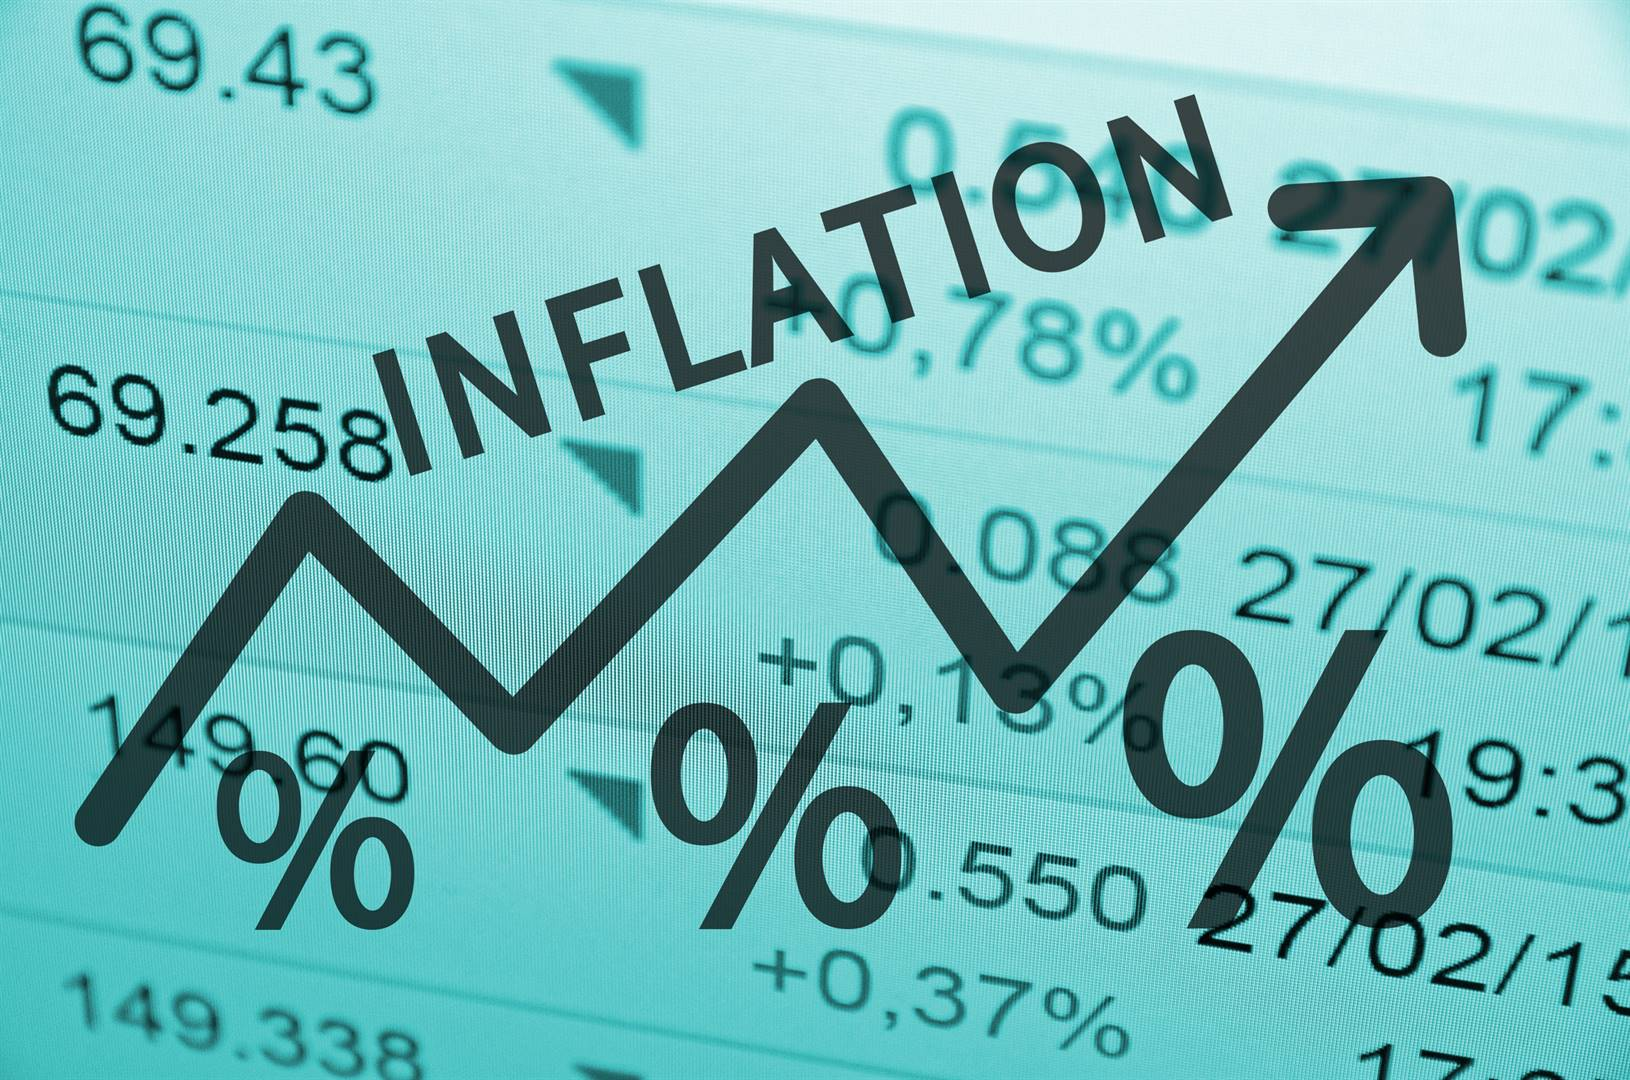 Inflation. PictureL iStock/Gallo Images